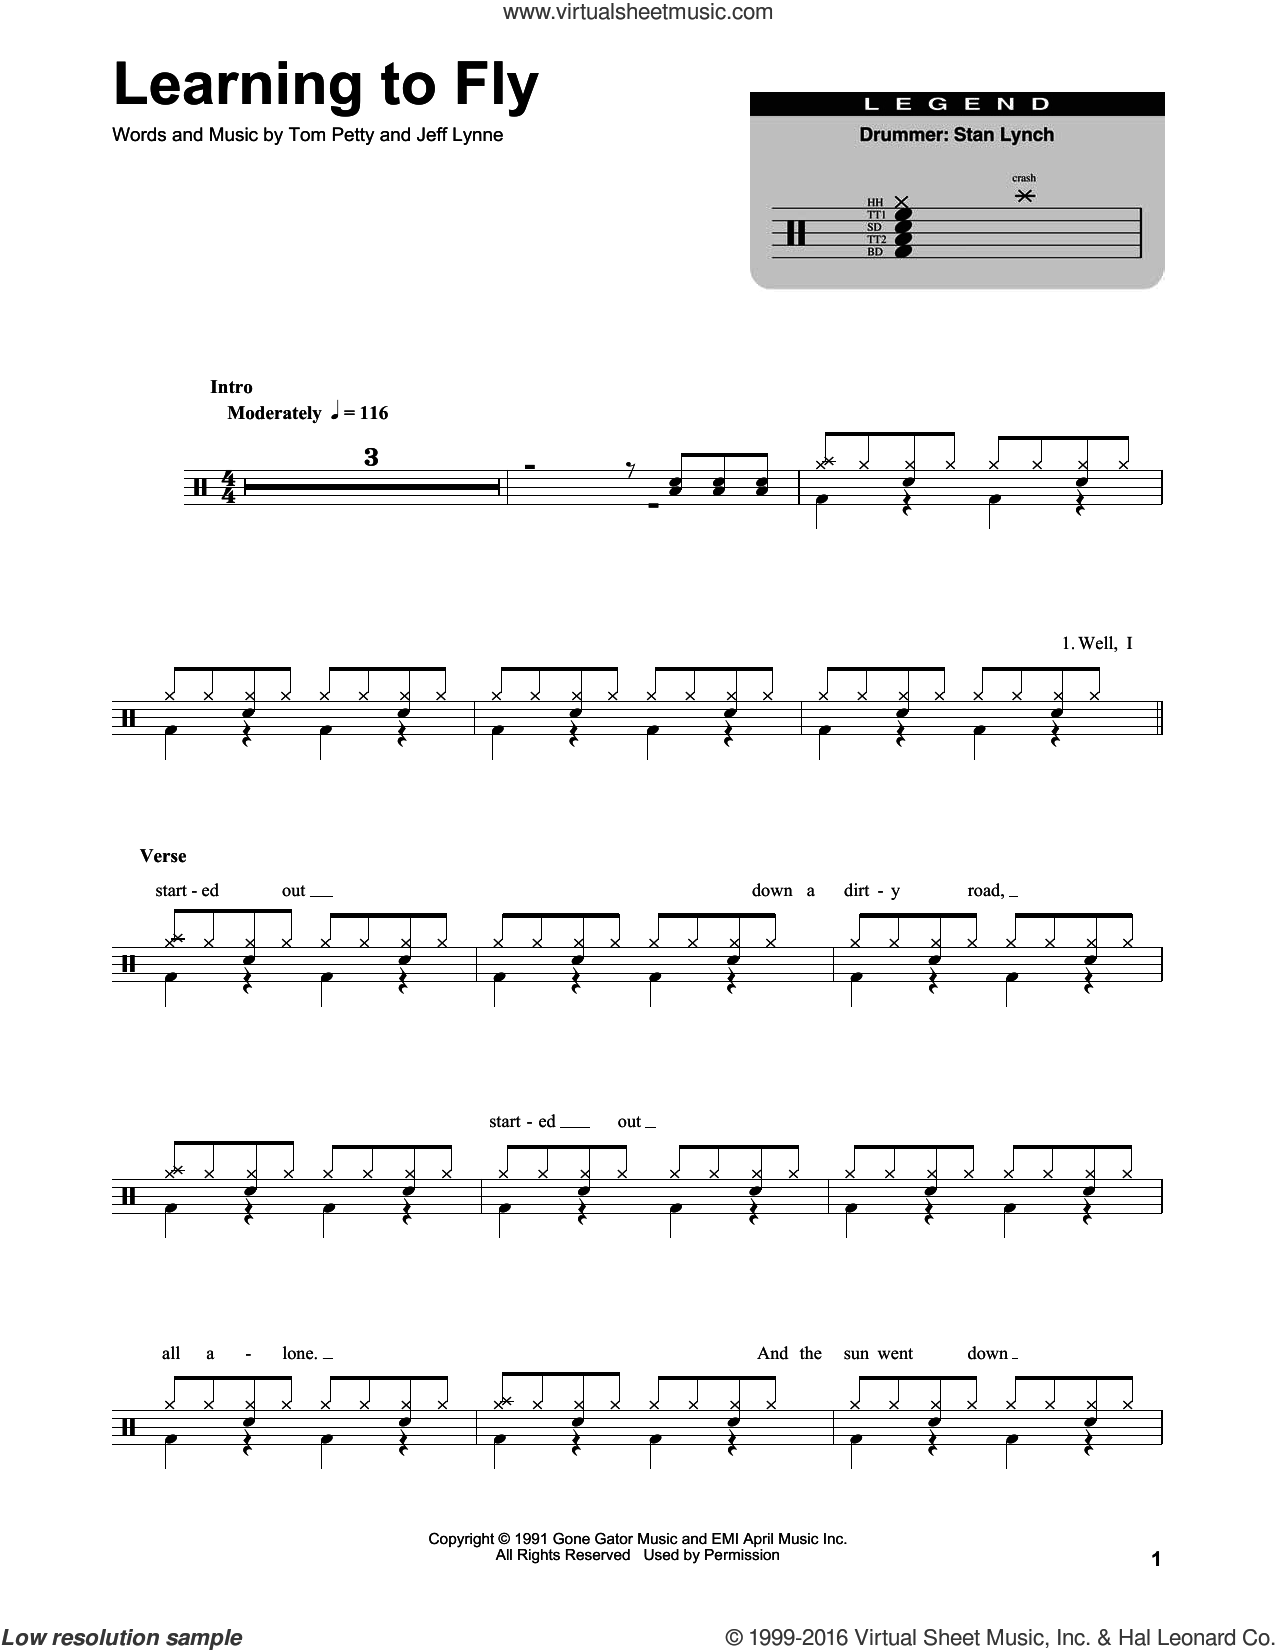 Learning To Fly sheet music for drums by Tom Petty and Jeff Lynne, intermediate skill level